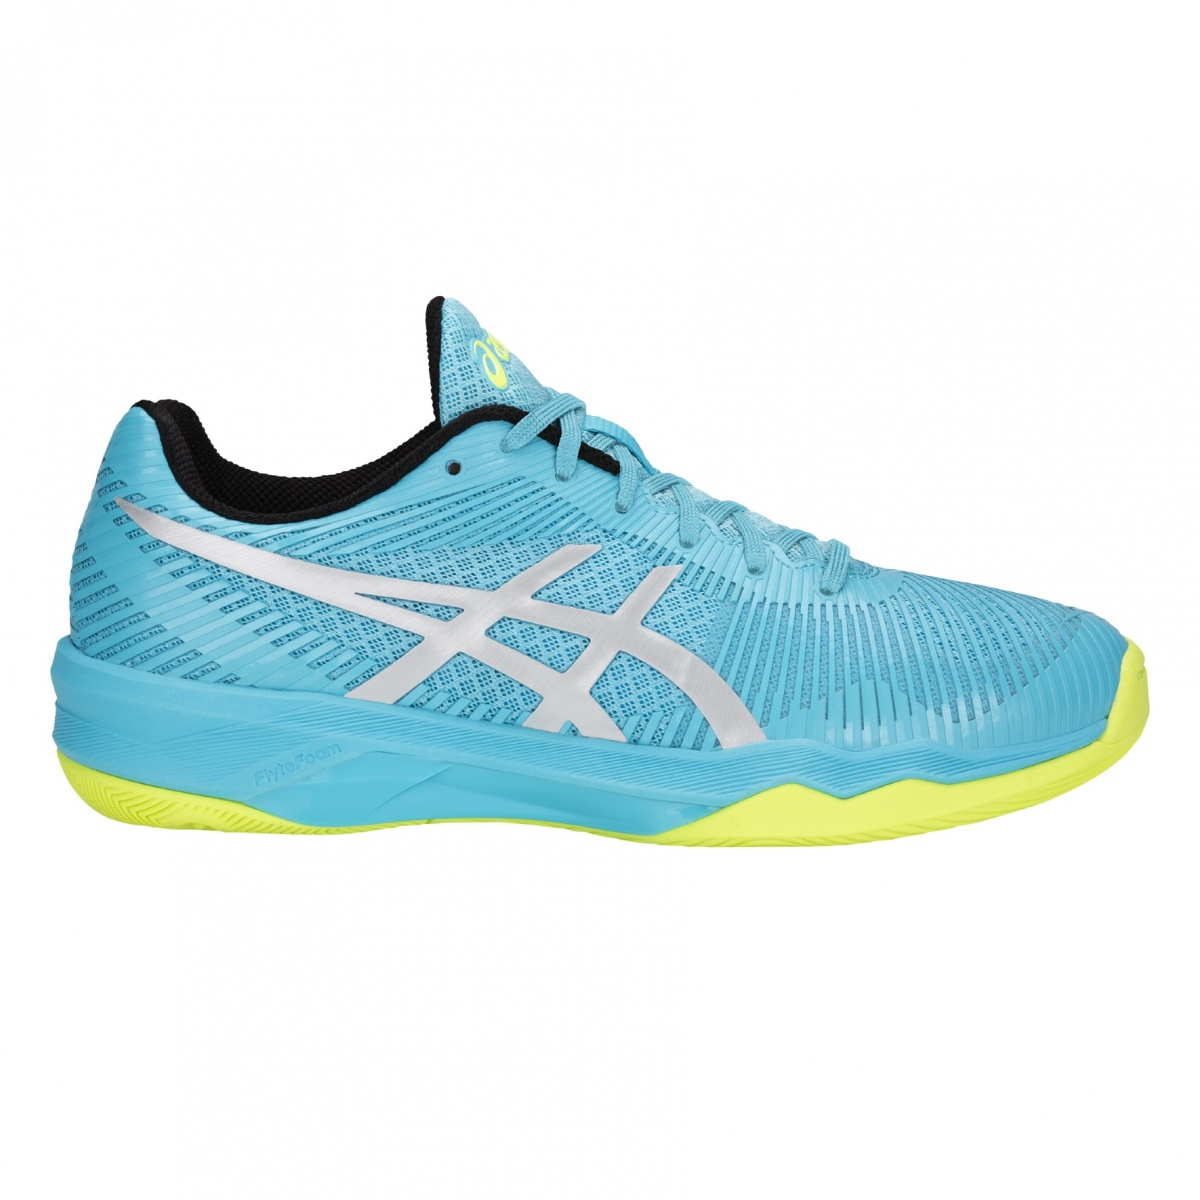 Asics Gel Volley Elite FF 2018 aqua Volleyballschuhe Damen ...